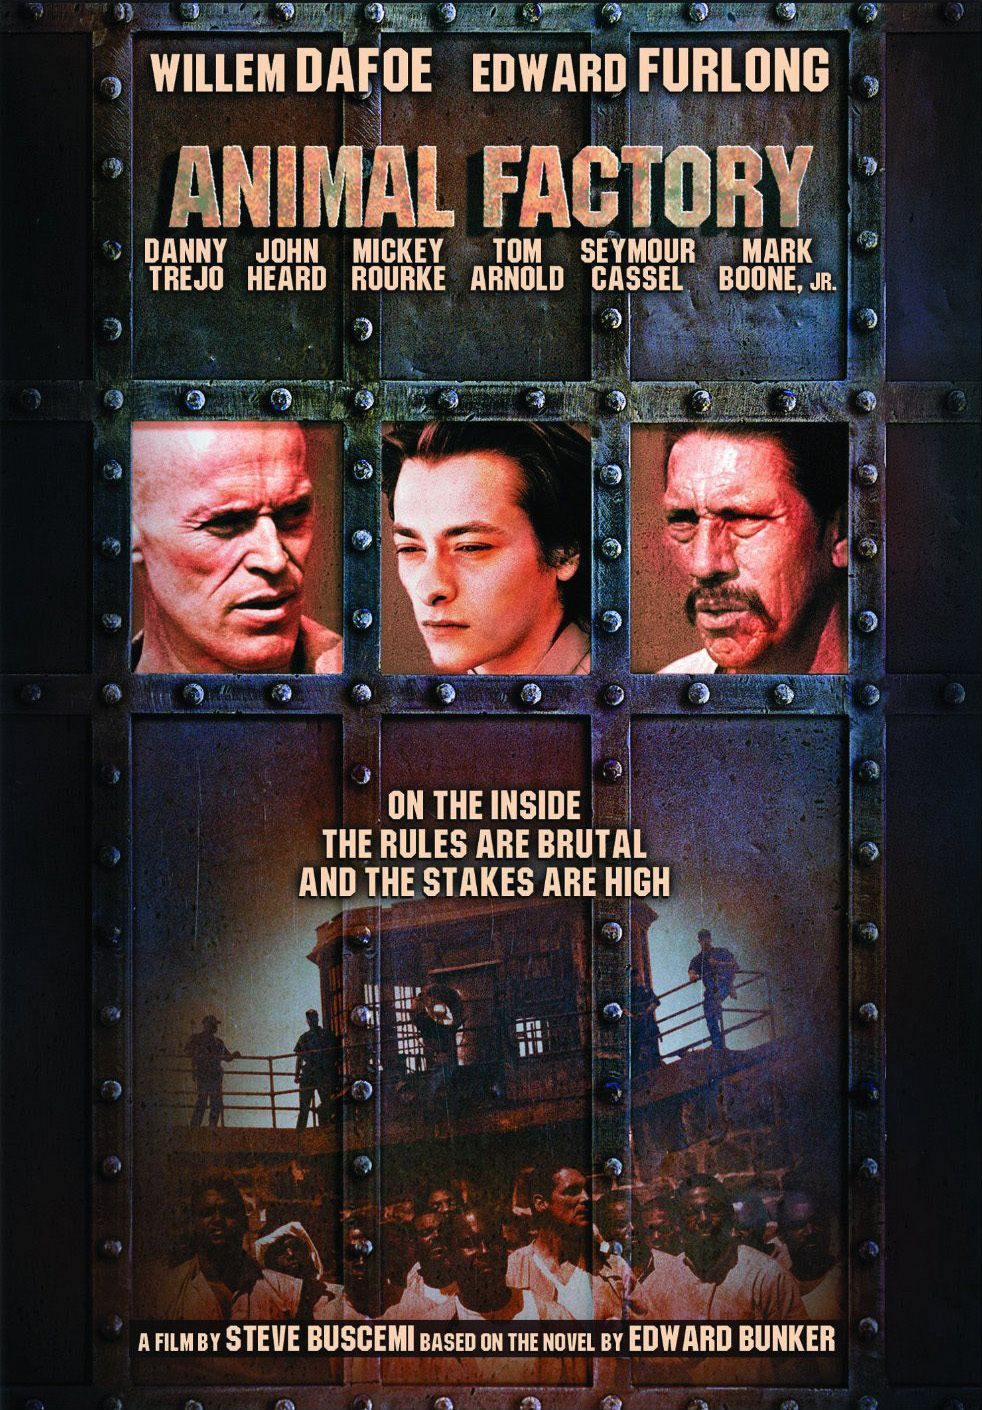 click image to watch Animal Factory (2000)